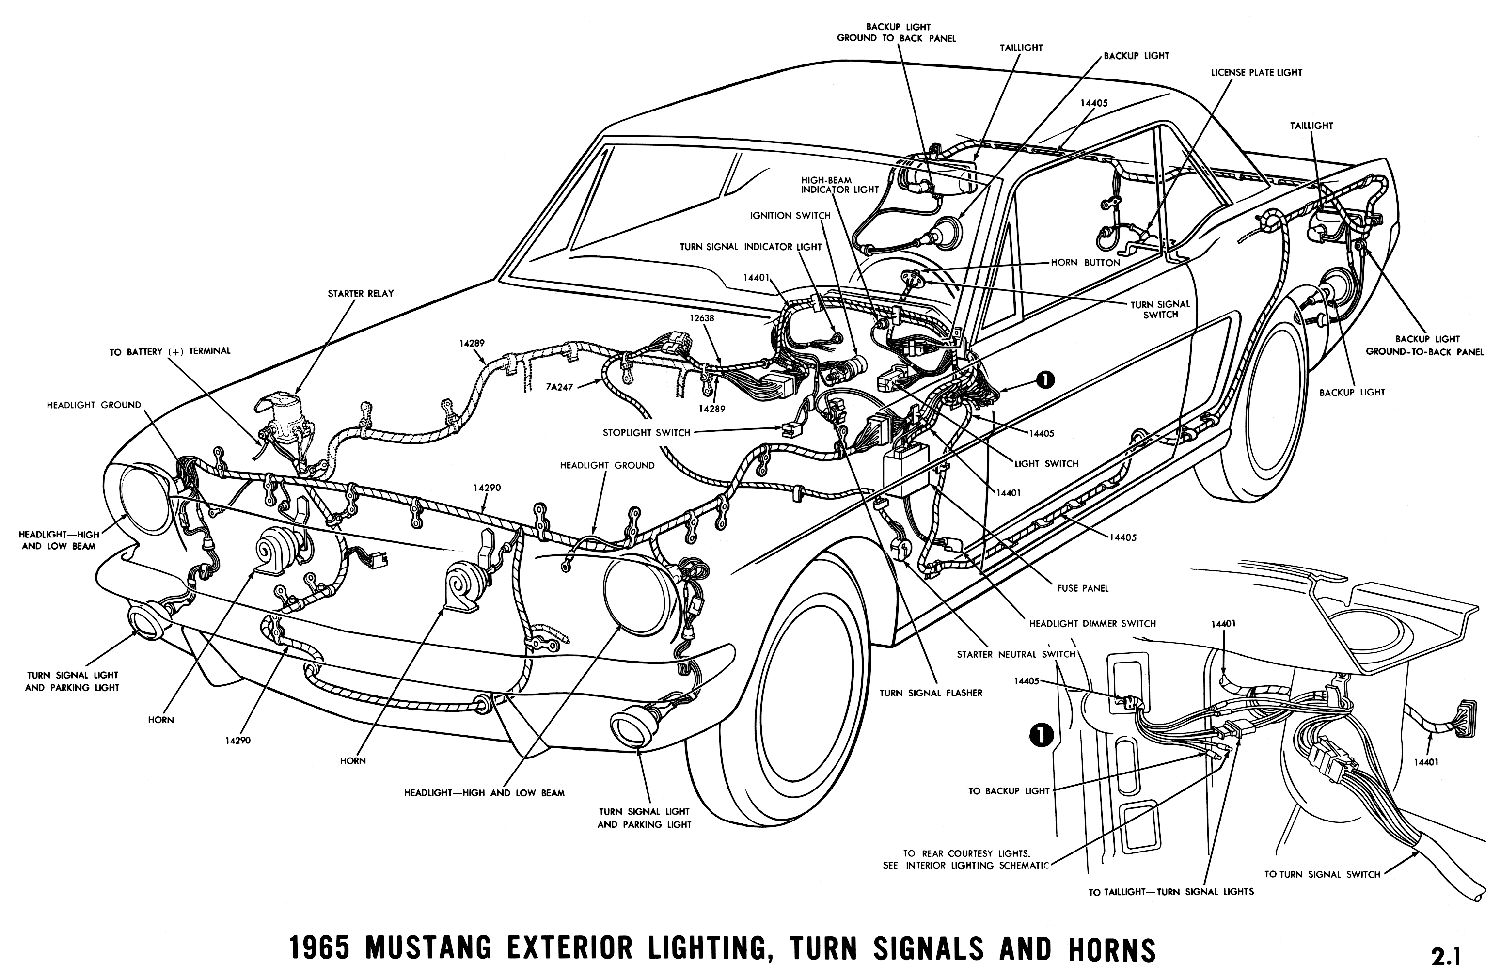 1965 Mustang Wiring Diagrams Average Joe Restoration Block Diagram Pictorial Or Schematic